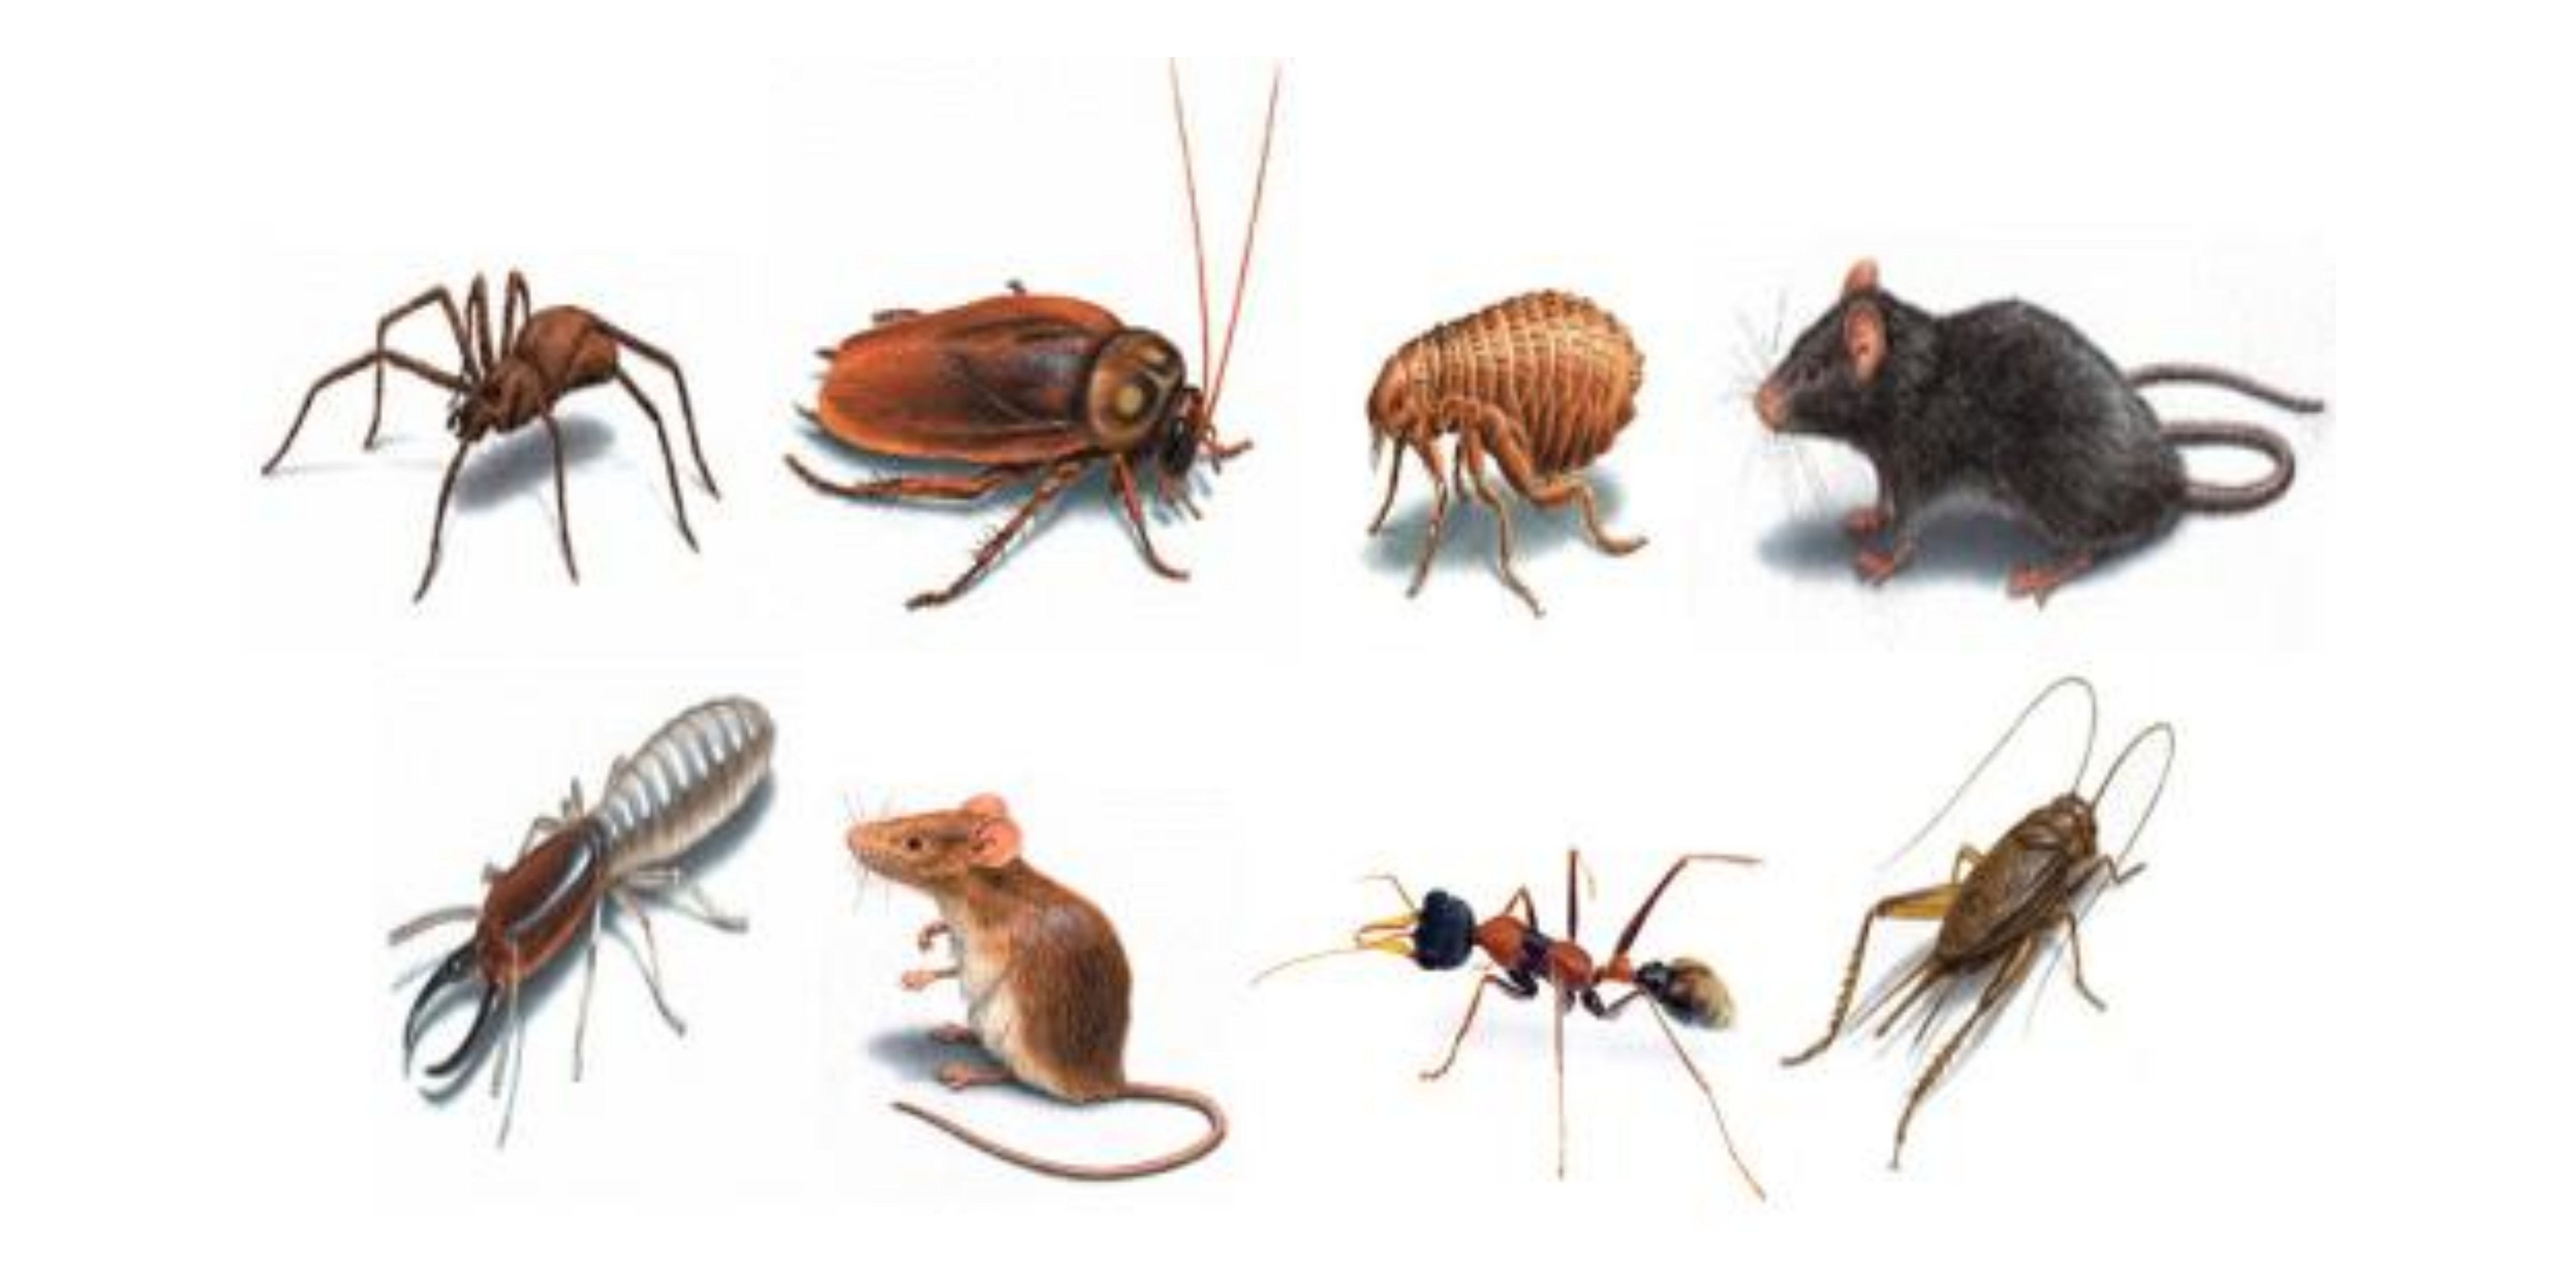 How to Control Household Pests in Singapore?